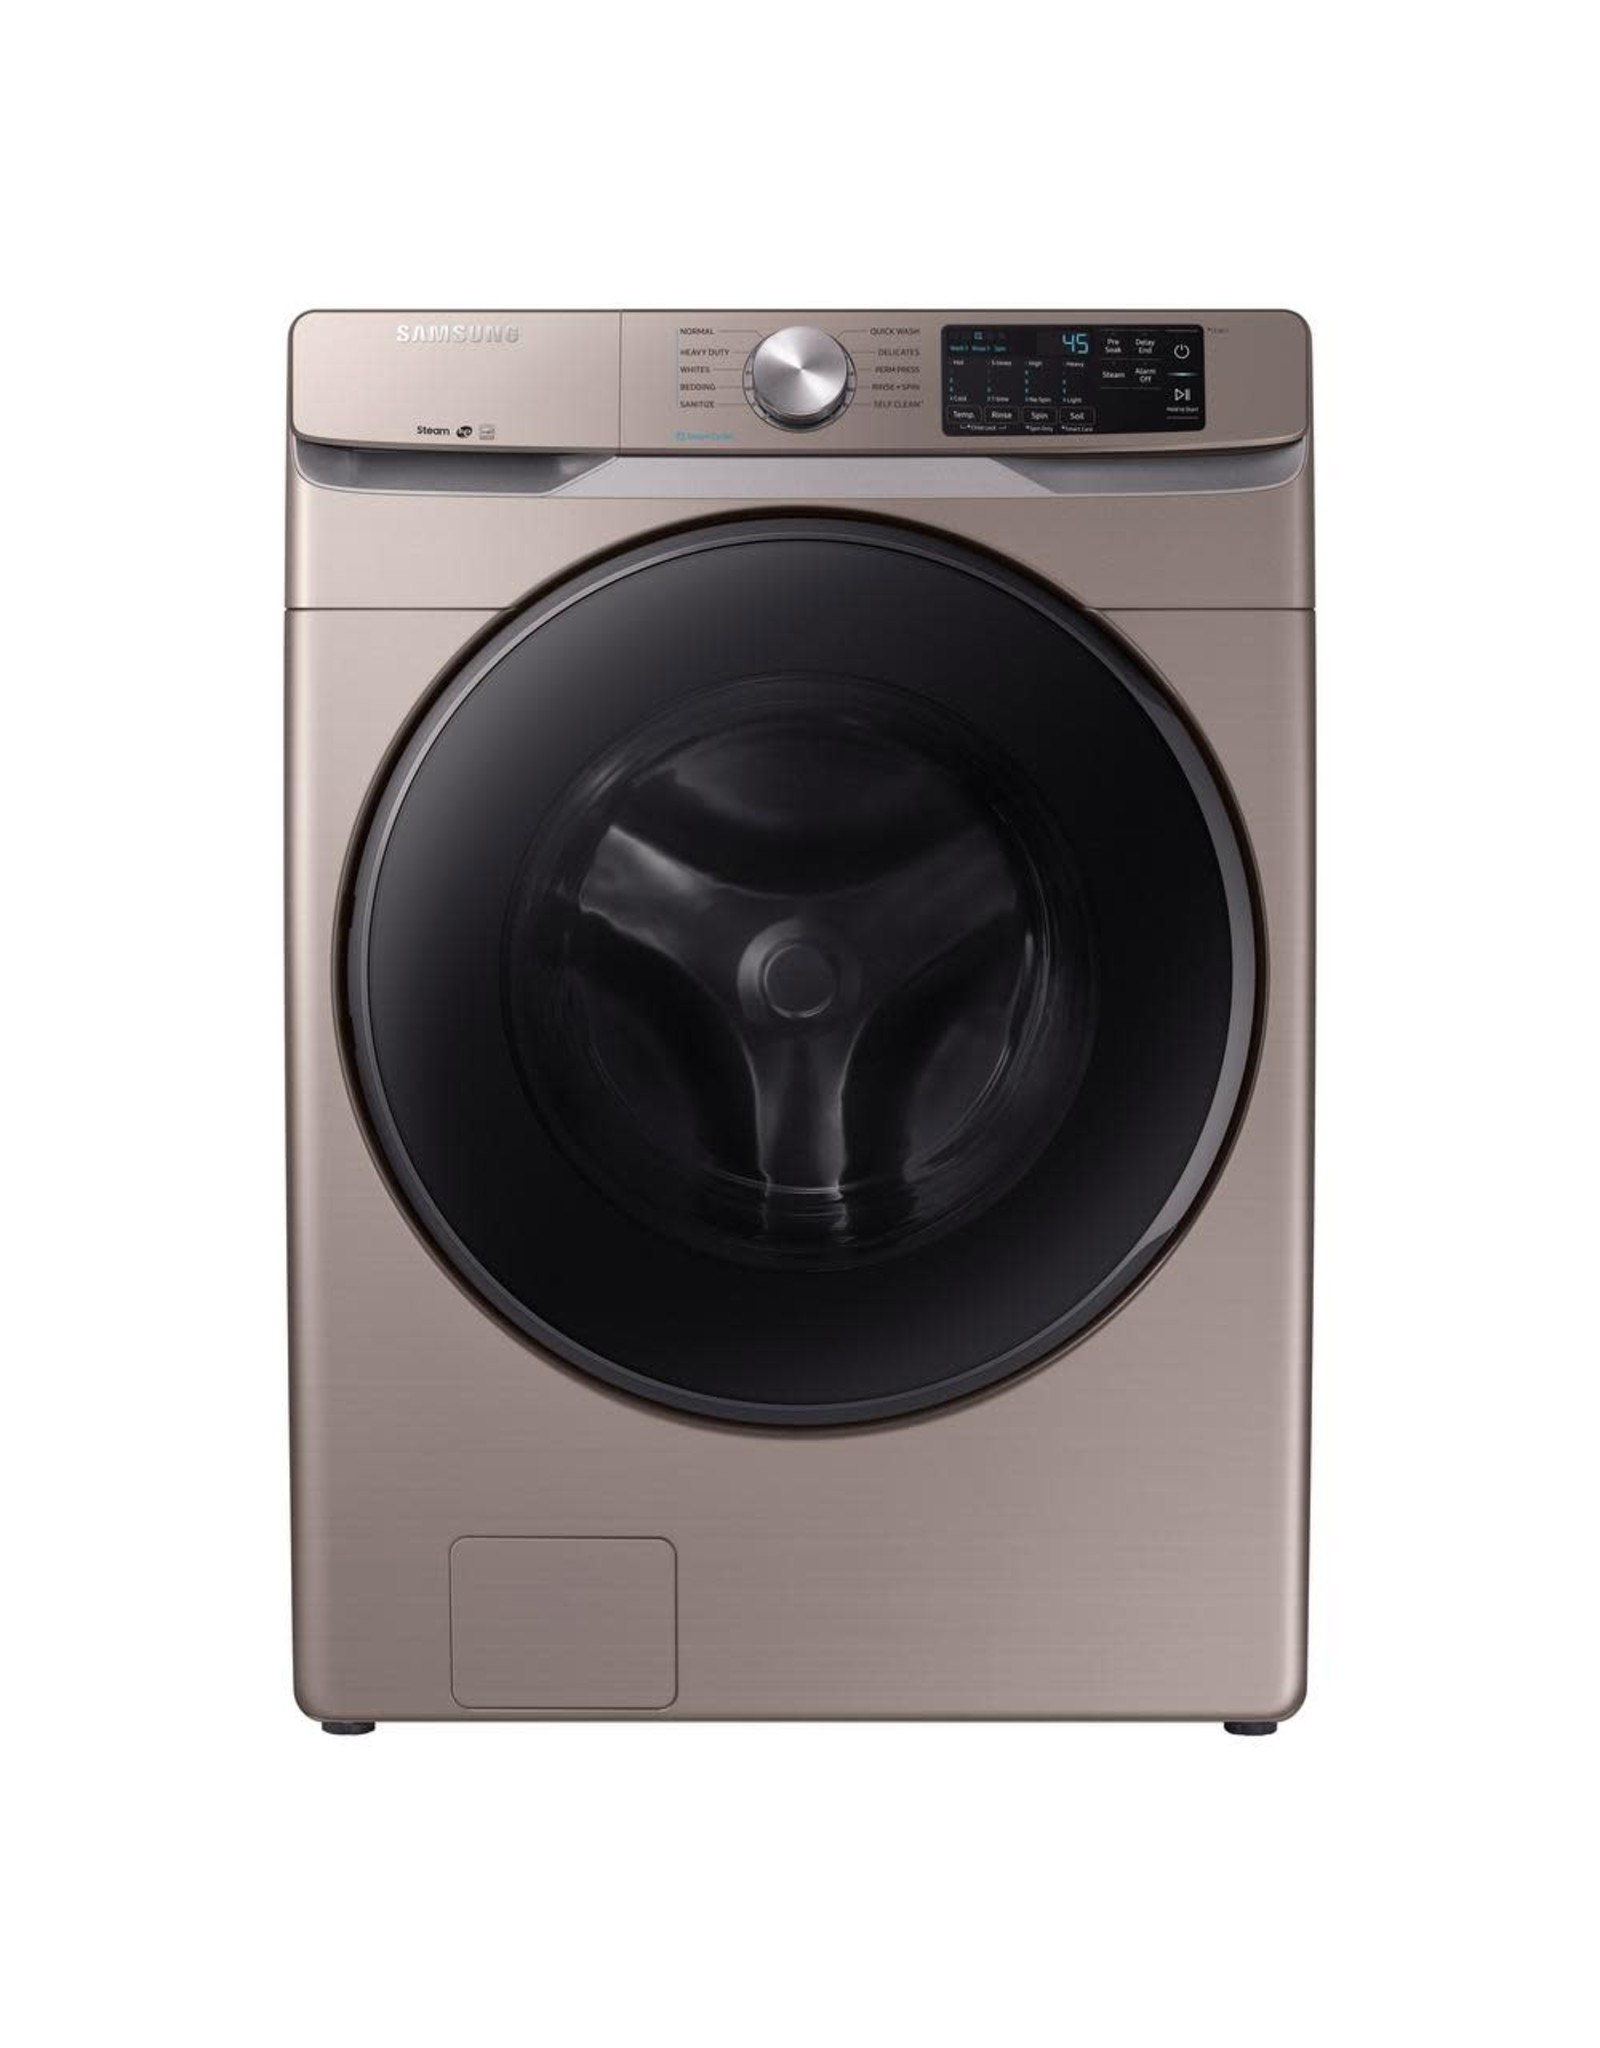 SAMSUNG WF45R6100AC 4.5 cu. ft. High-Efficiency Champagne Front Load Washing Machine with Steam, ENERGY STAR